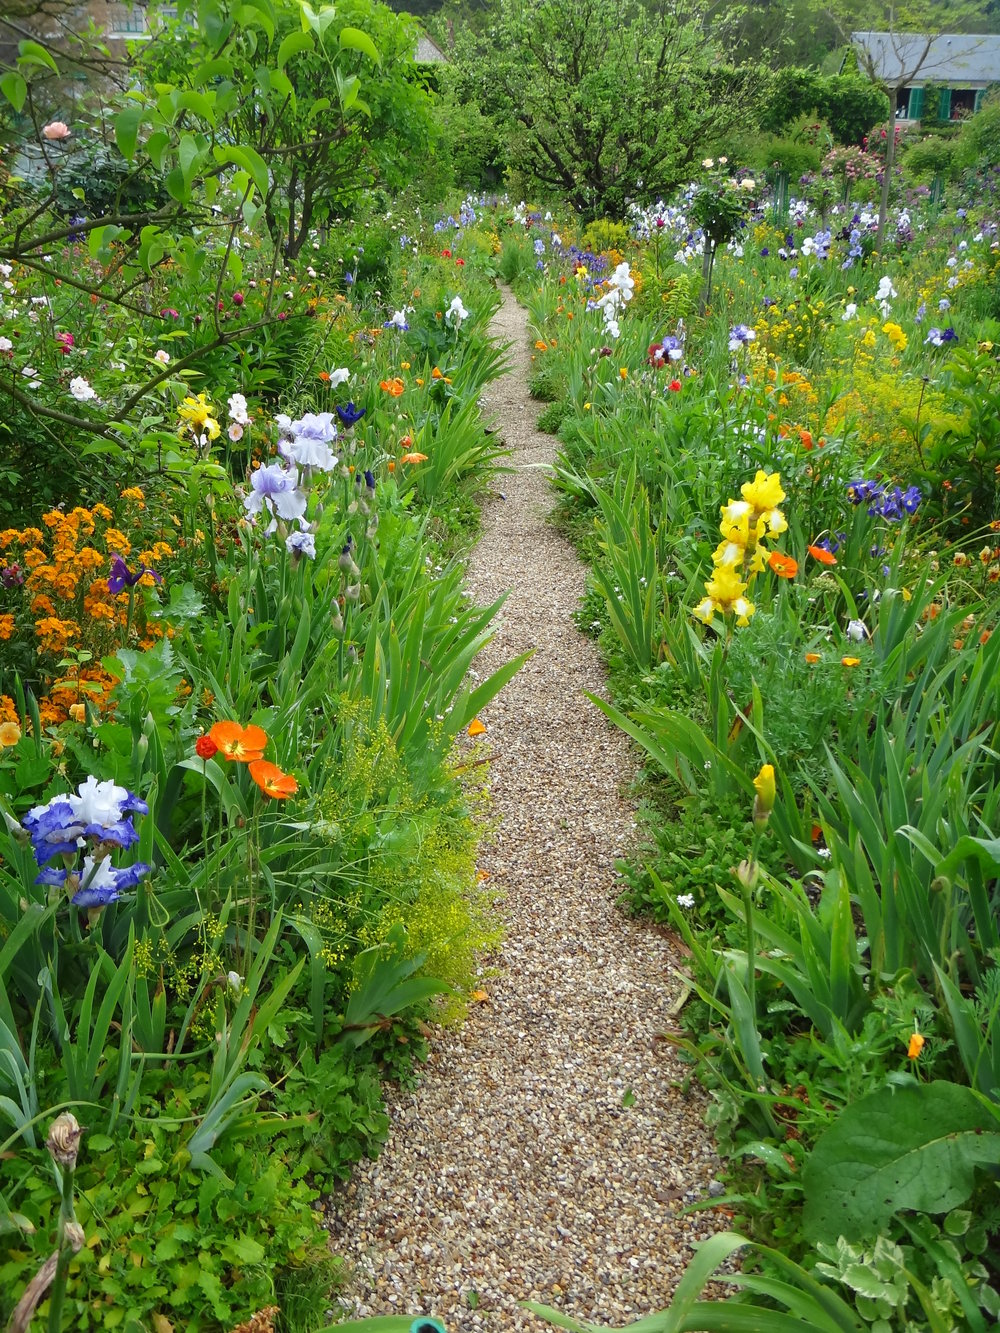 Pathway at Giverny